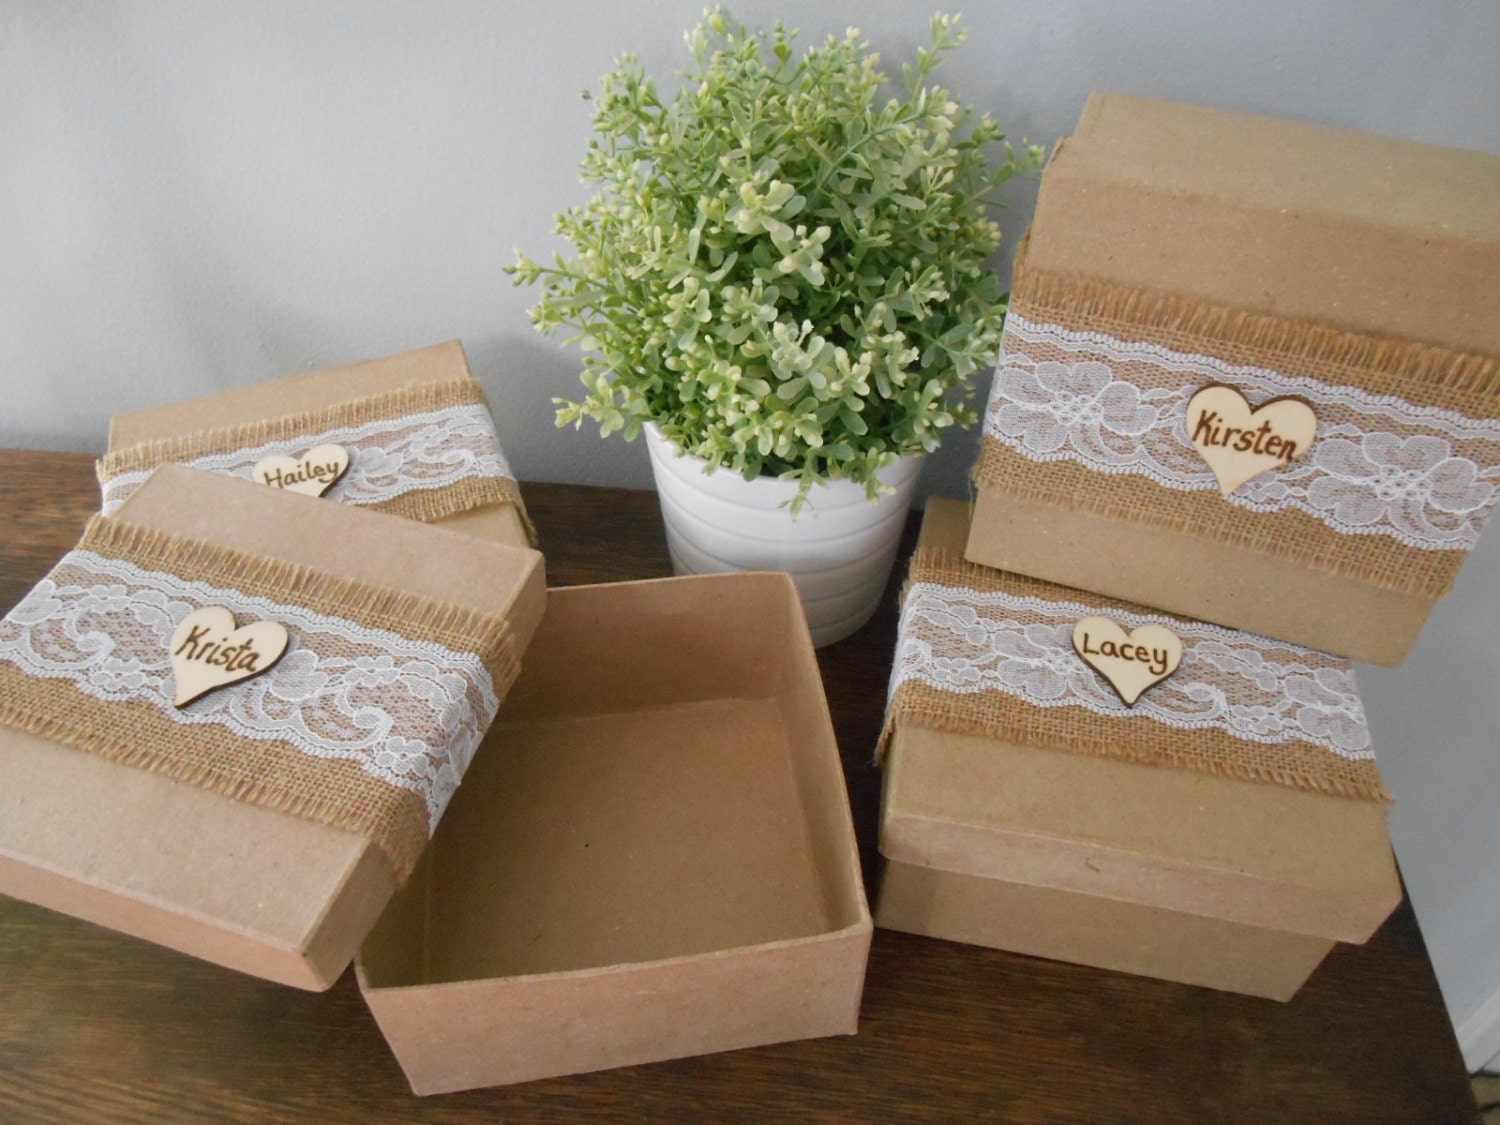 Rustic Personalized Bridesmaid Gift Box Set Of 2 Jewelry